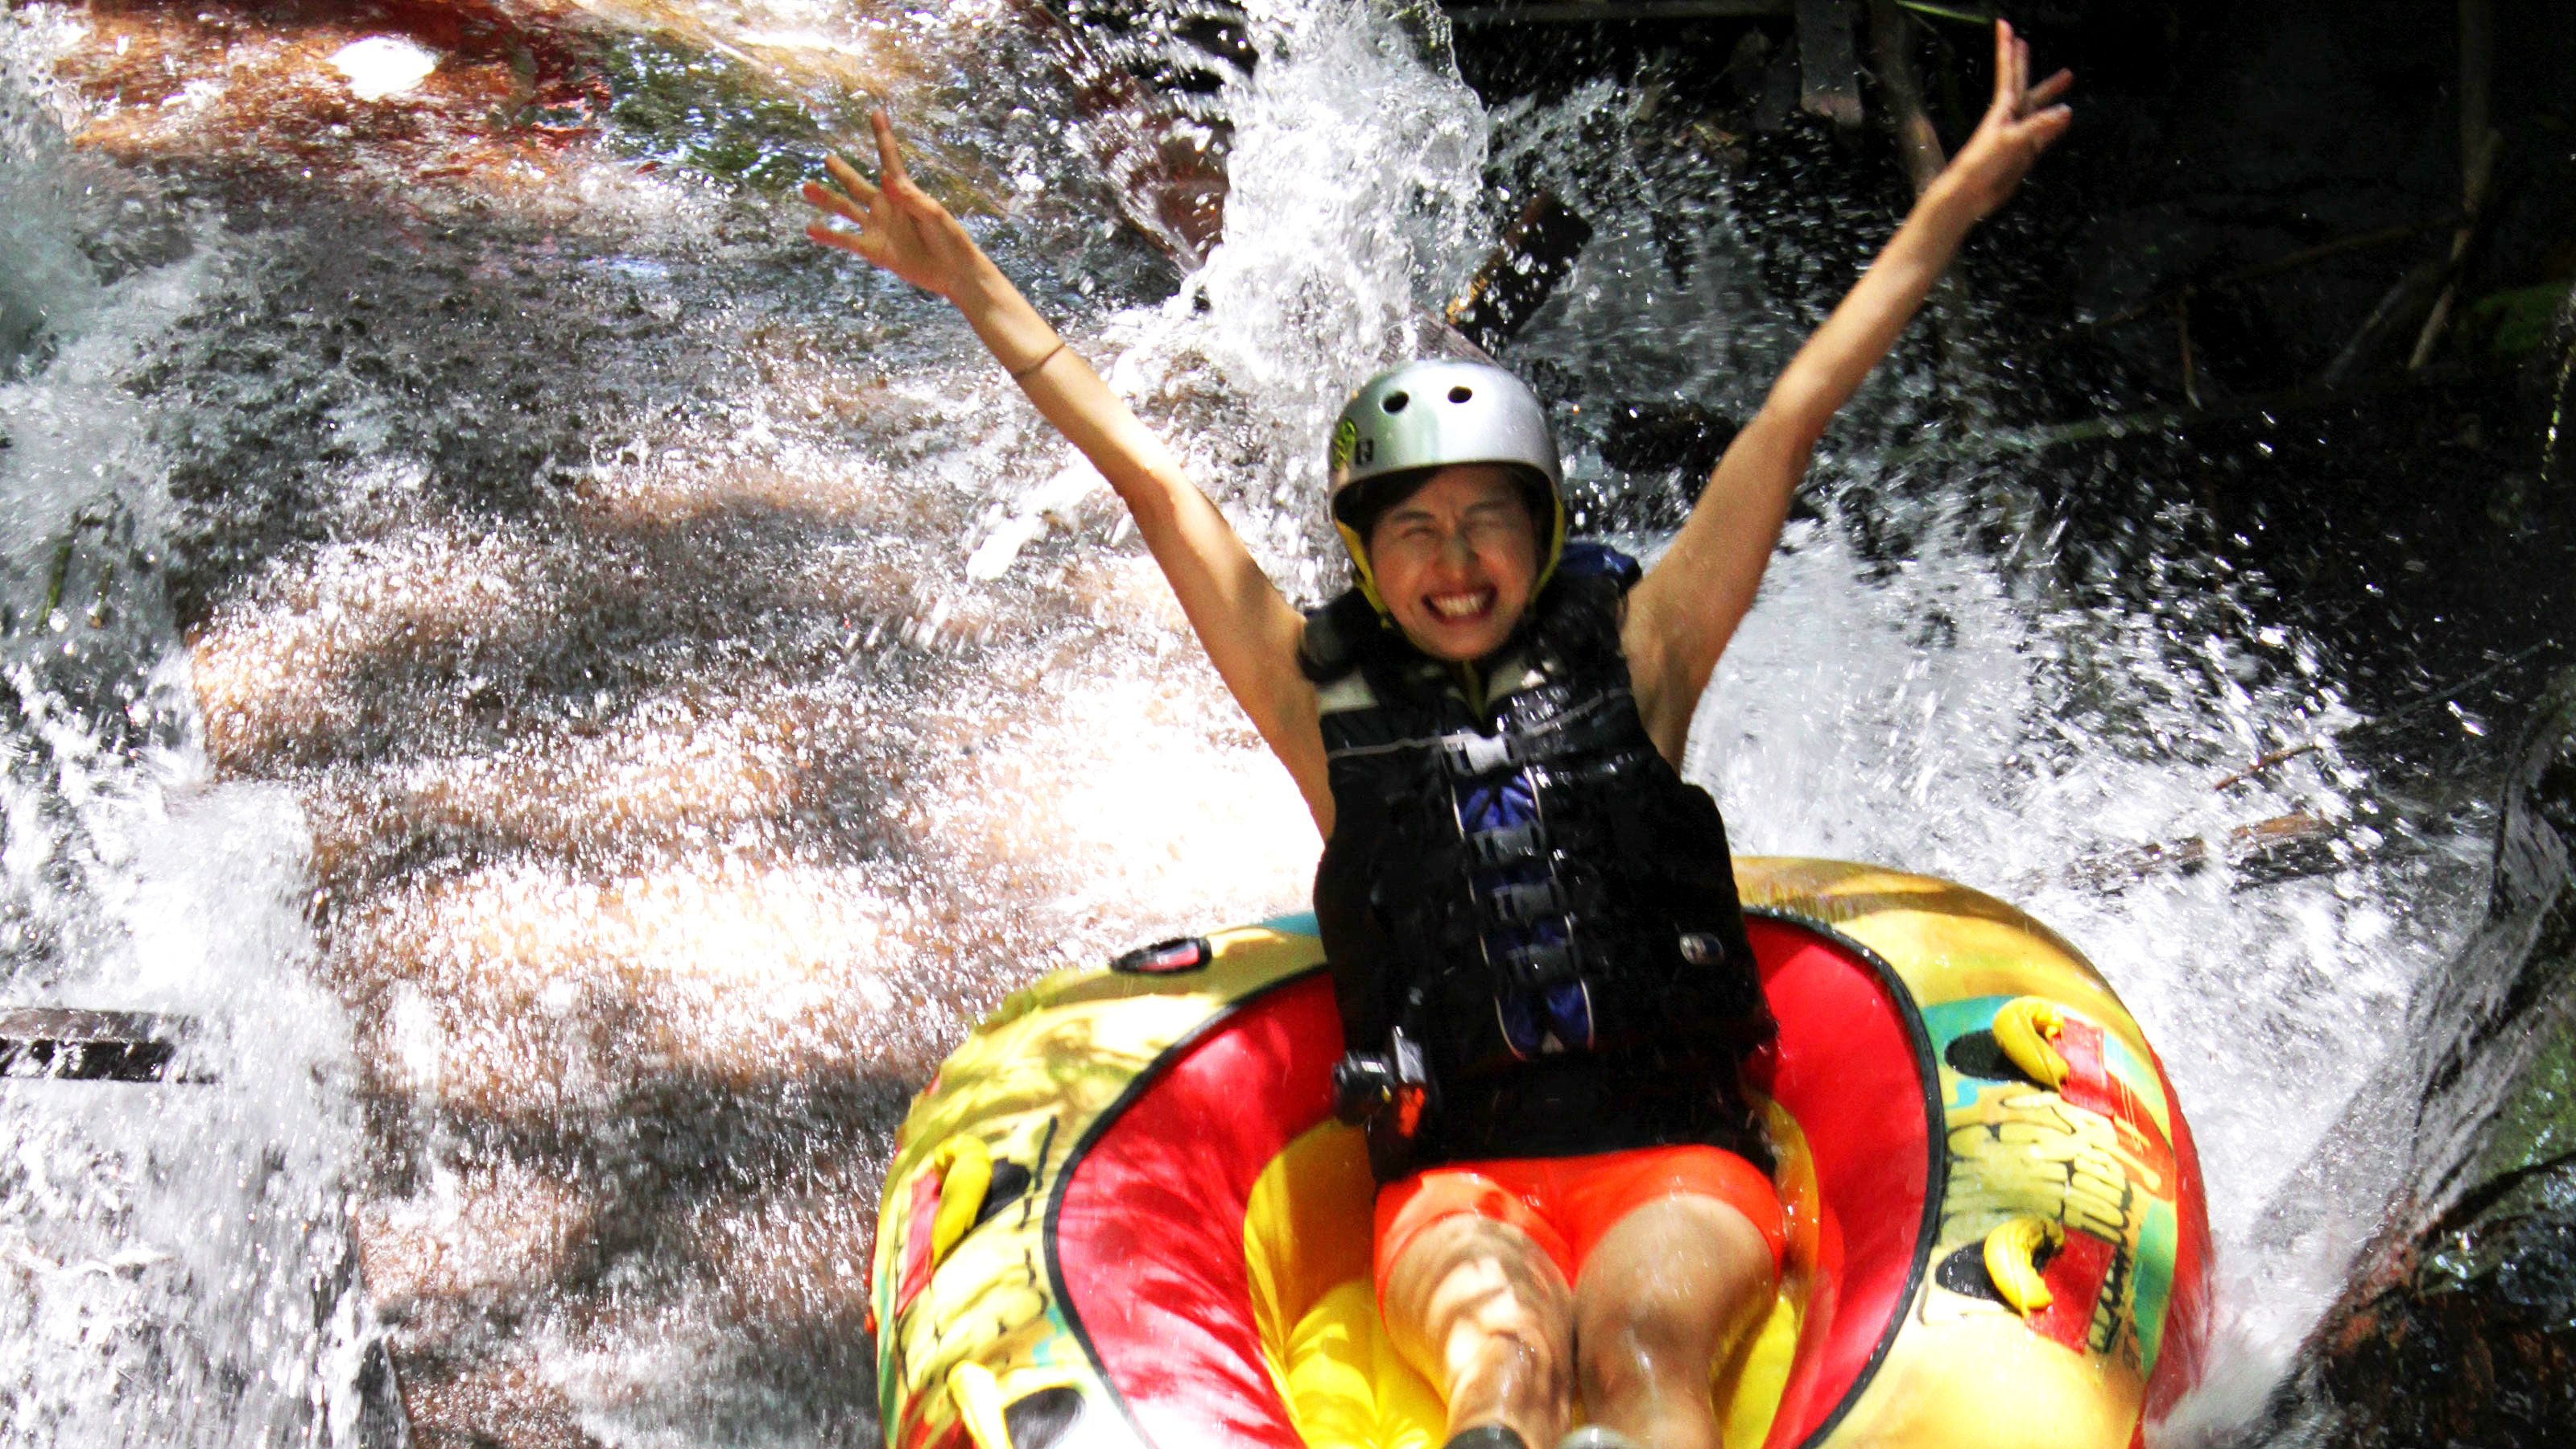 A woman tubing down a river in Bali